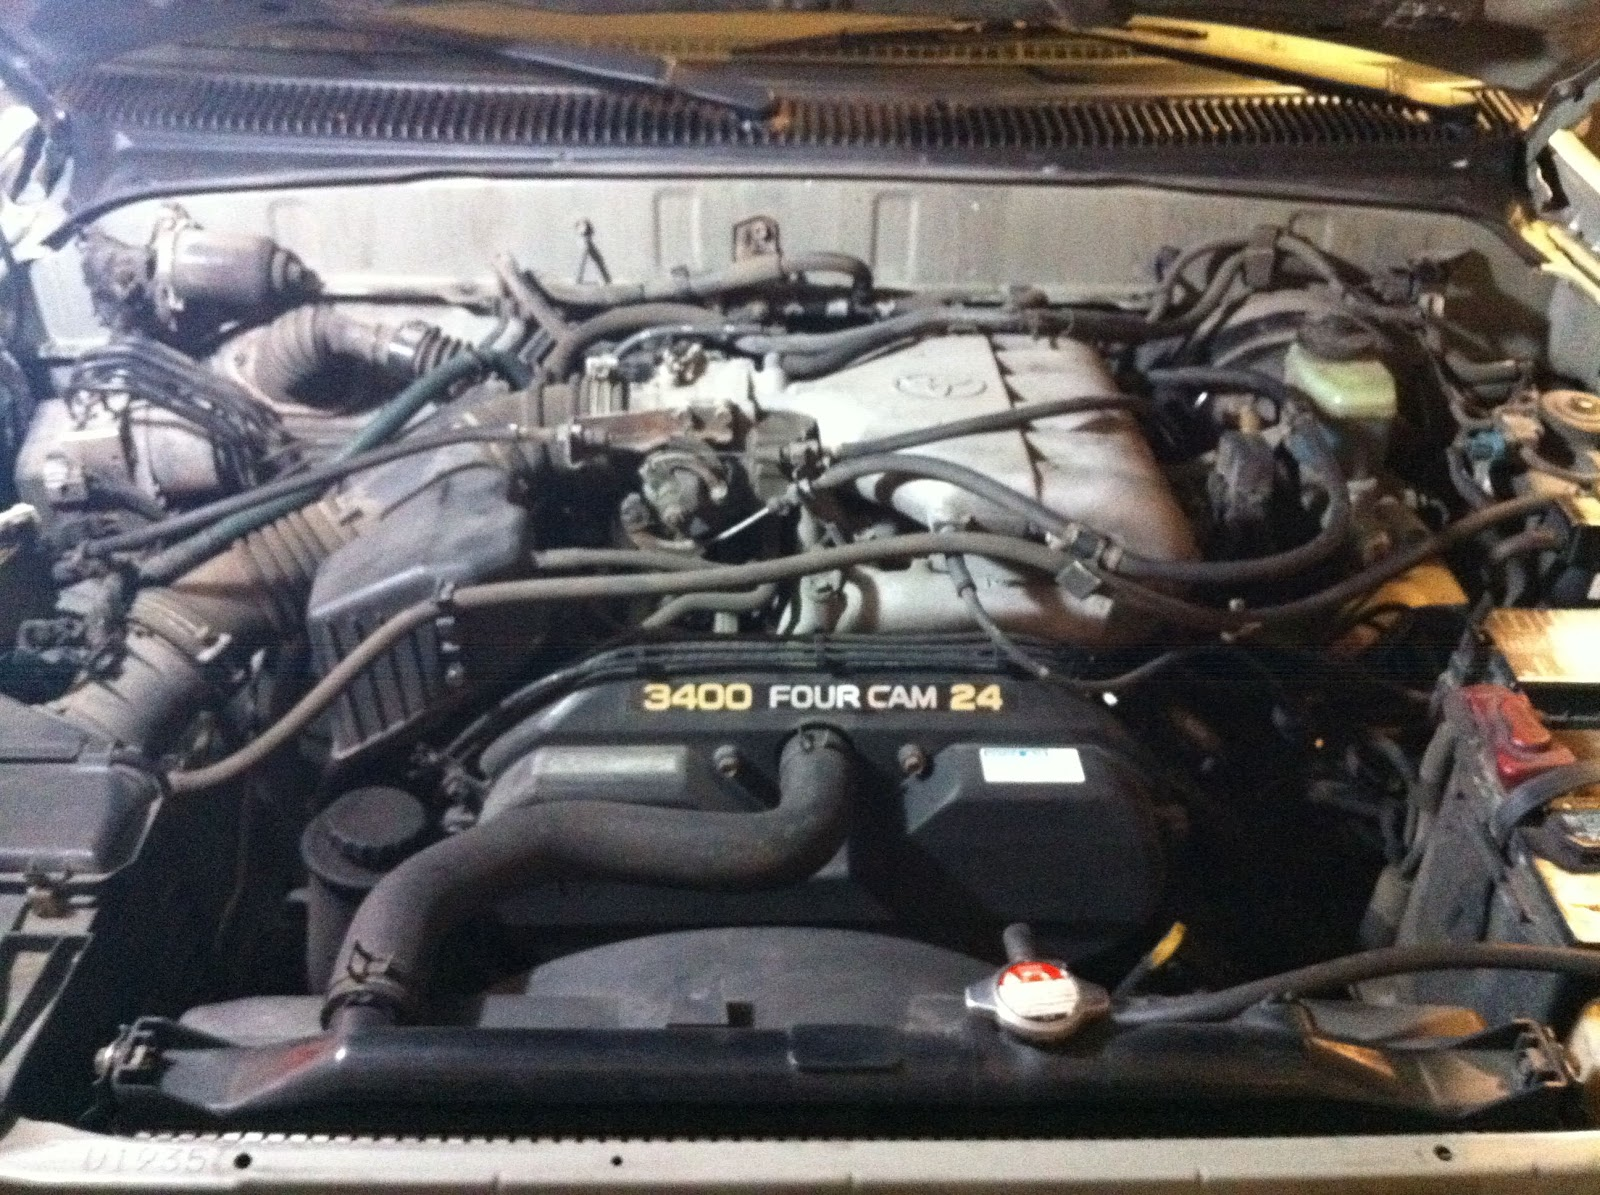 Experience Database: Replacing 1999 Toyota 4Runner Spark Plug